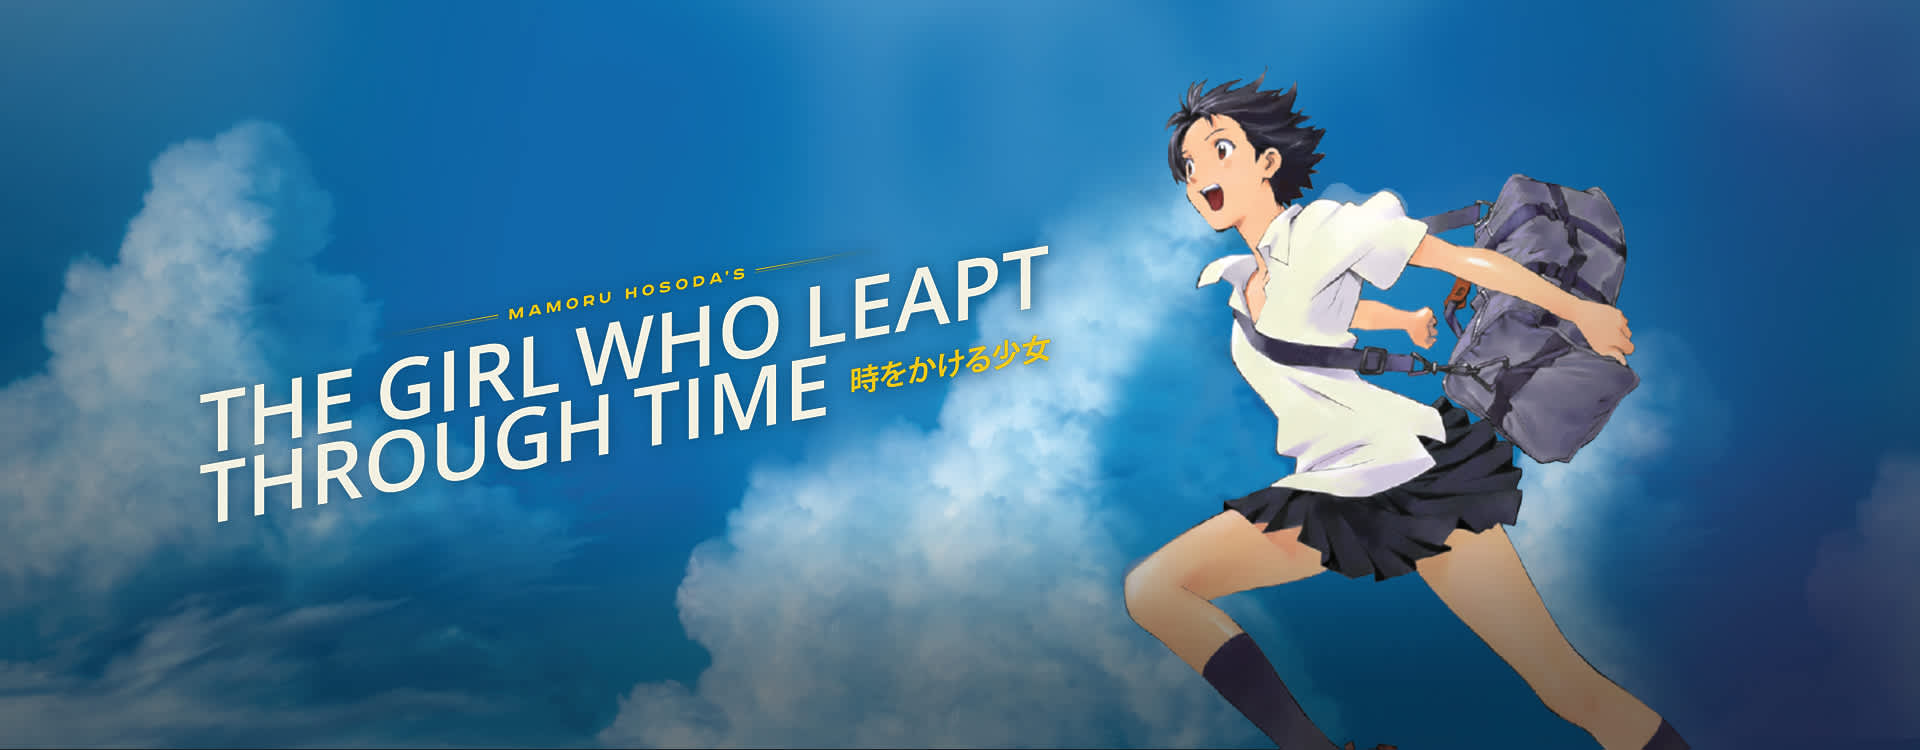 The Girl Who Leapt Through Time Stream